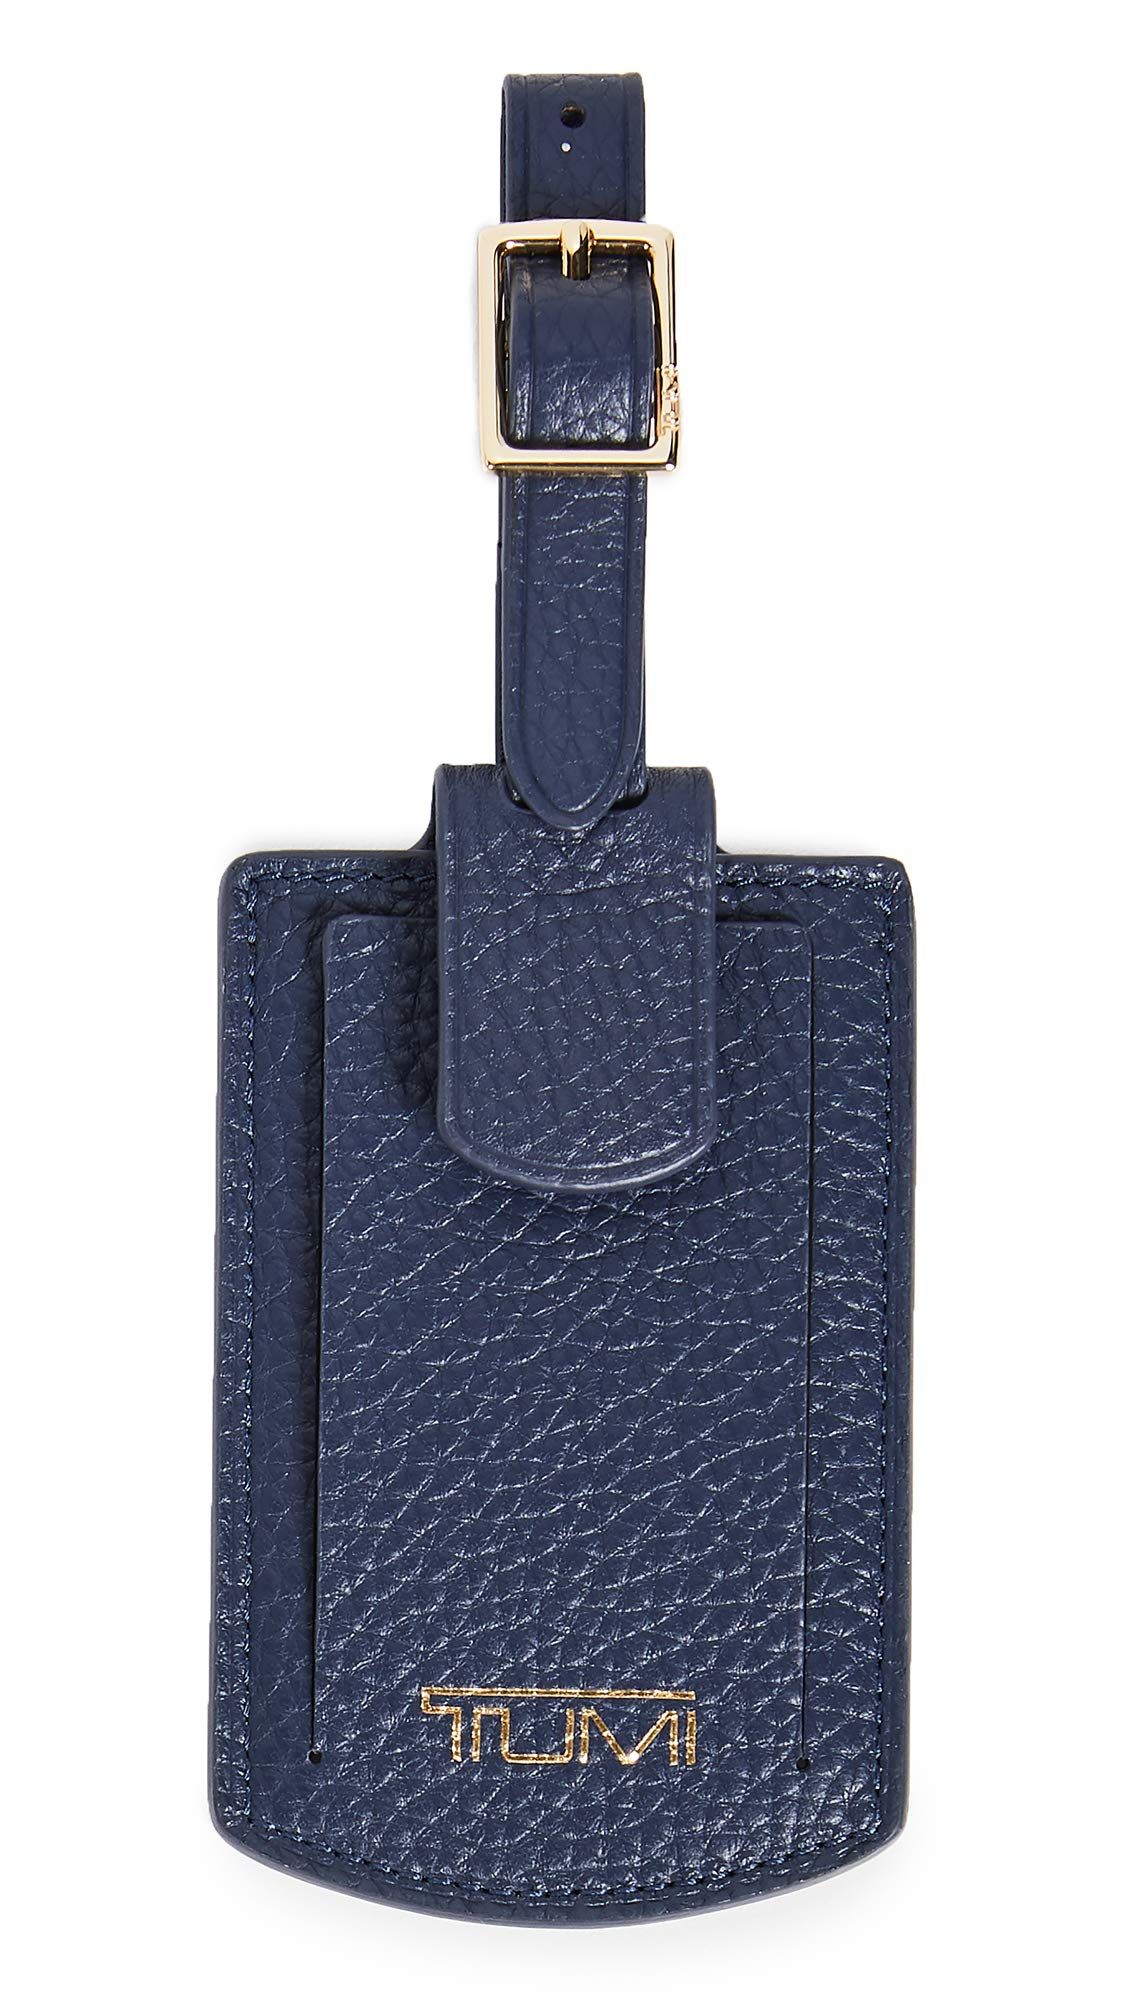 Tumi Women's Belden Luggage Tag, Ultramarine, Blue, One Size